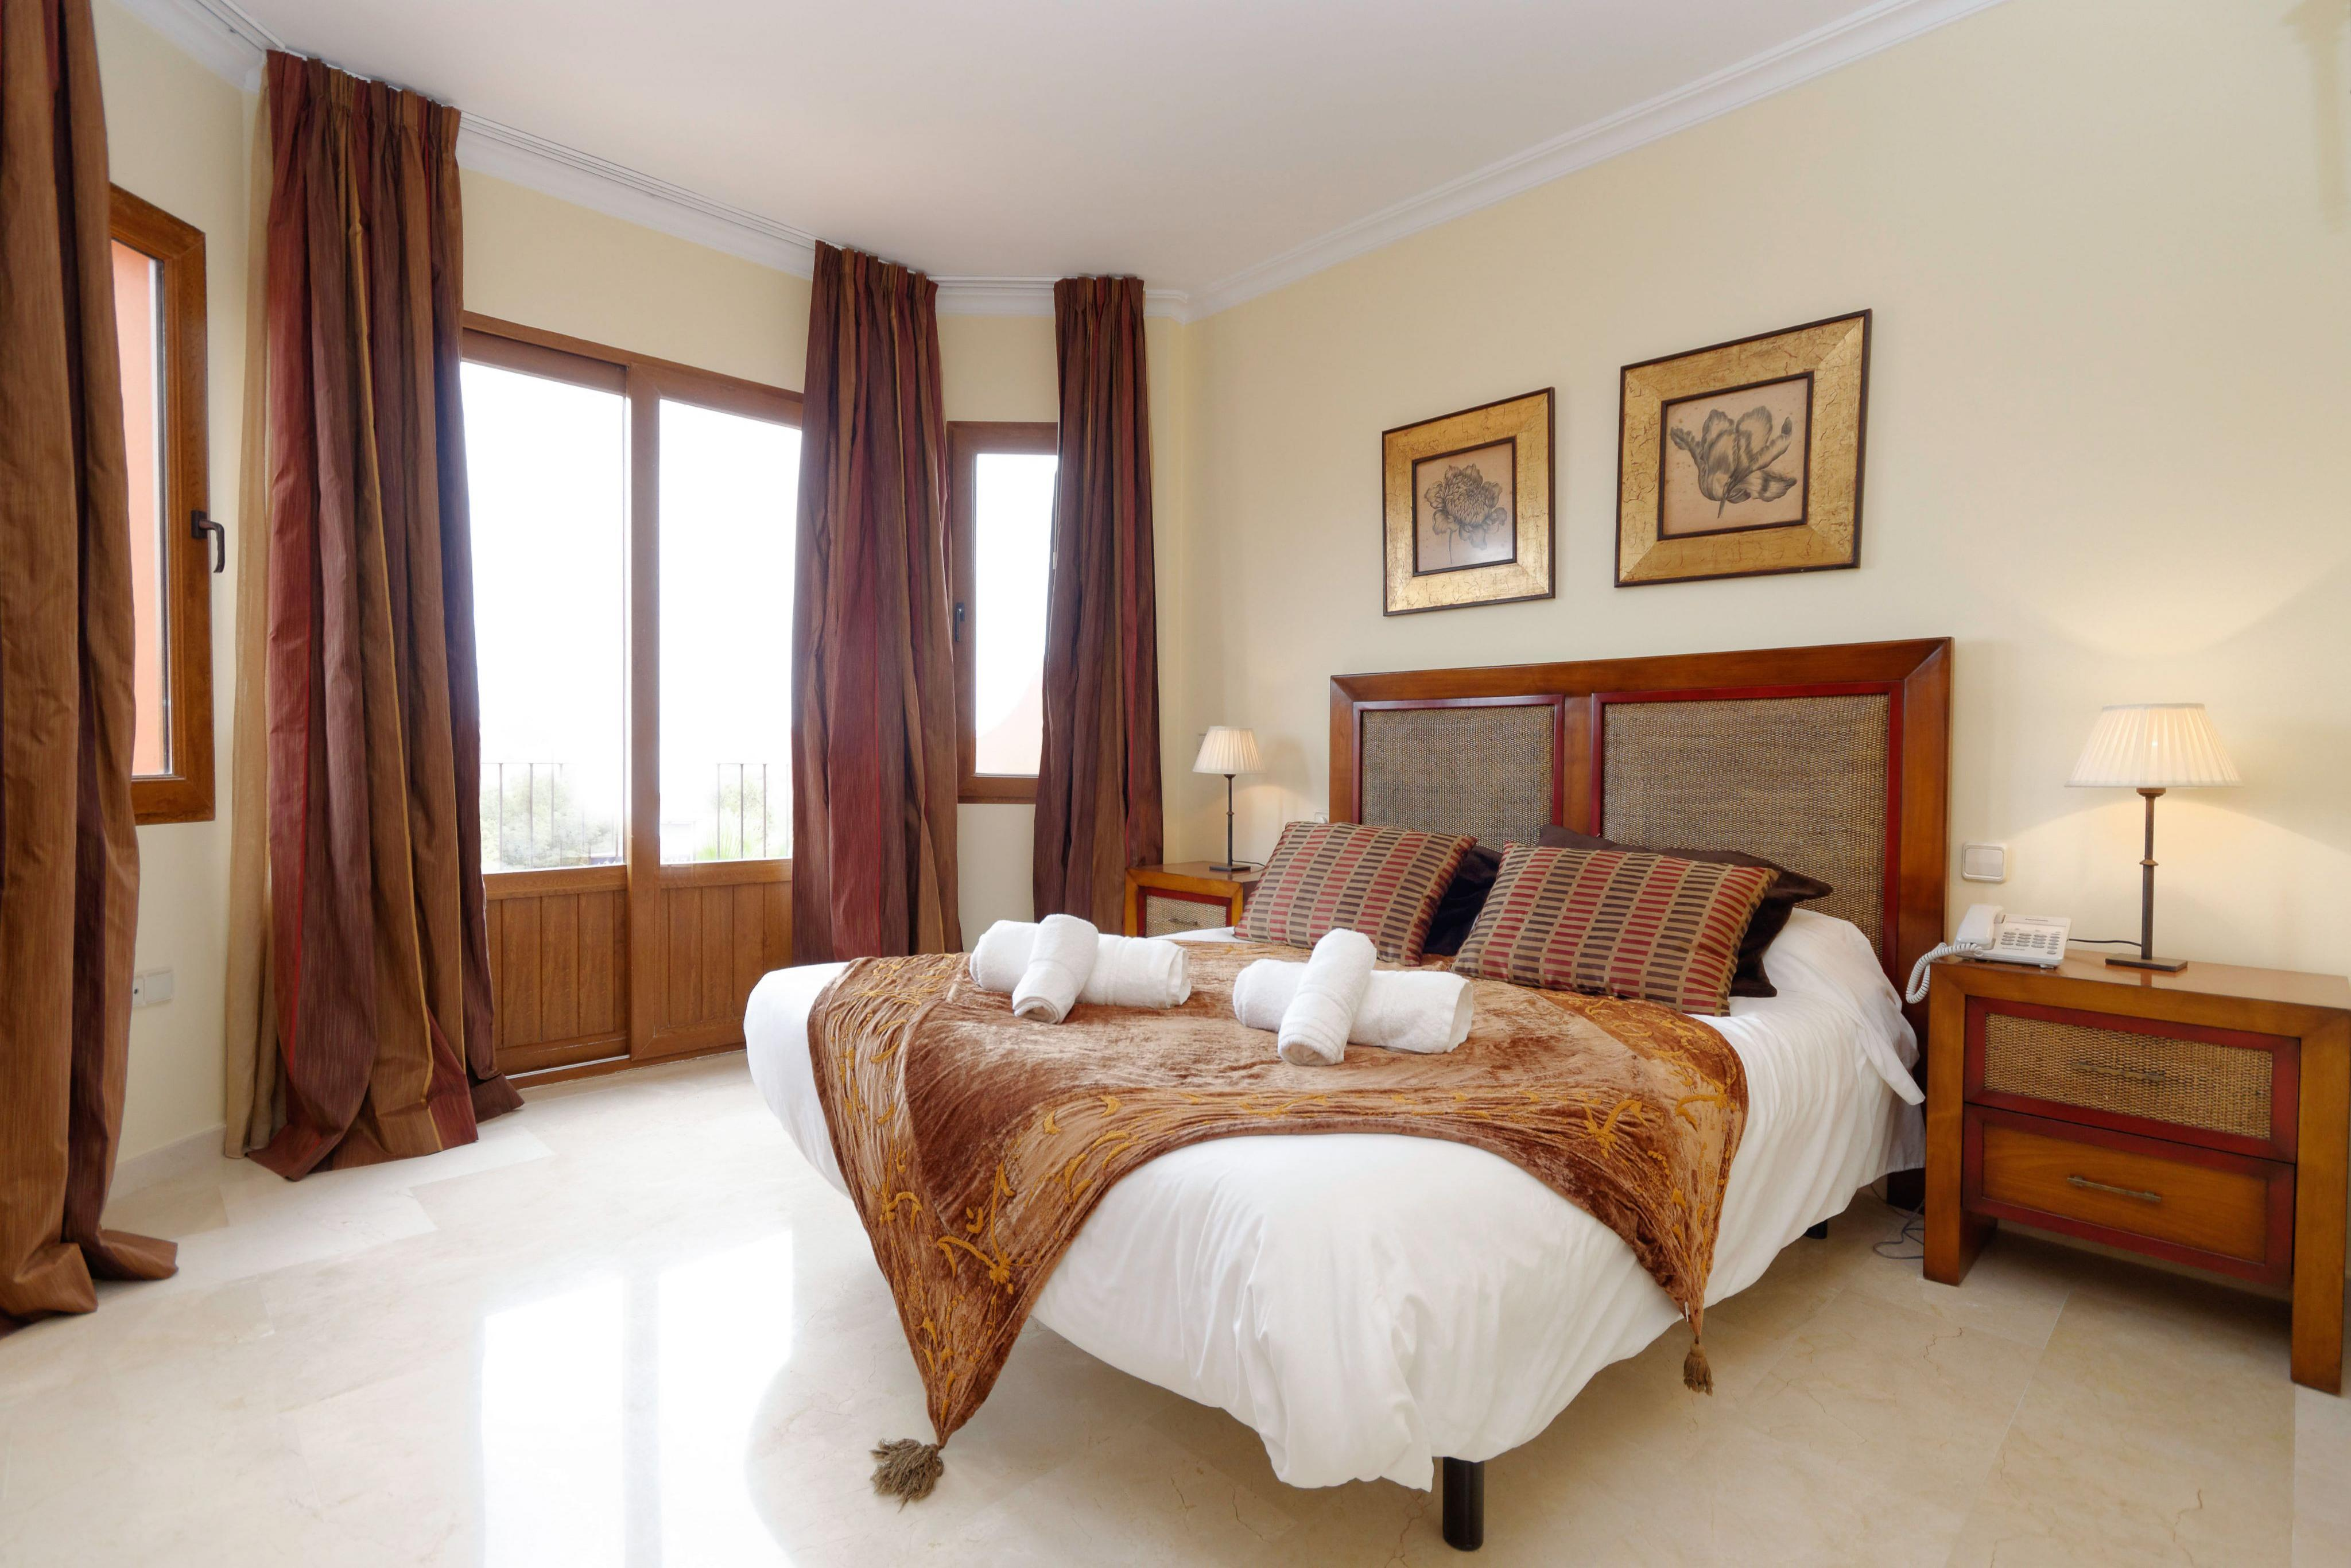 La Manga Club Resort - El Coto del Golf 521 3 Bedrooms, for rent